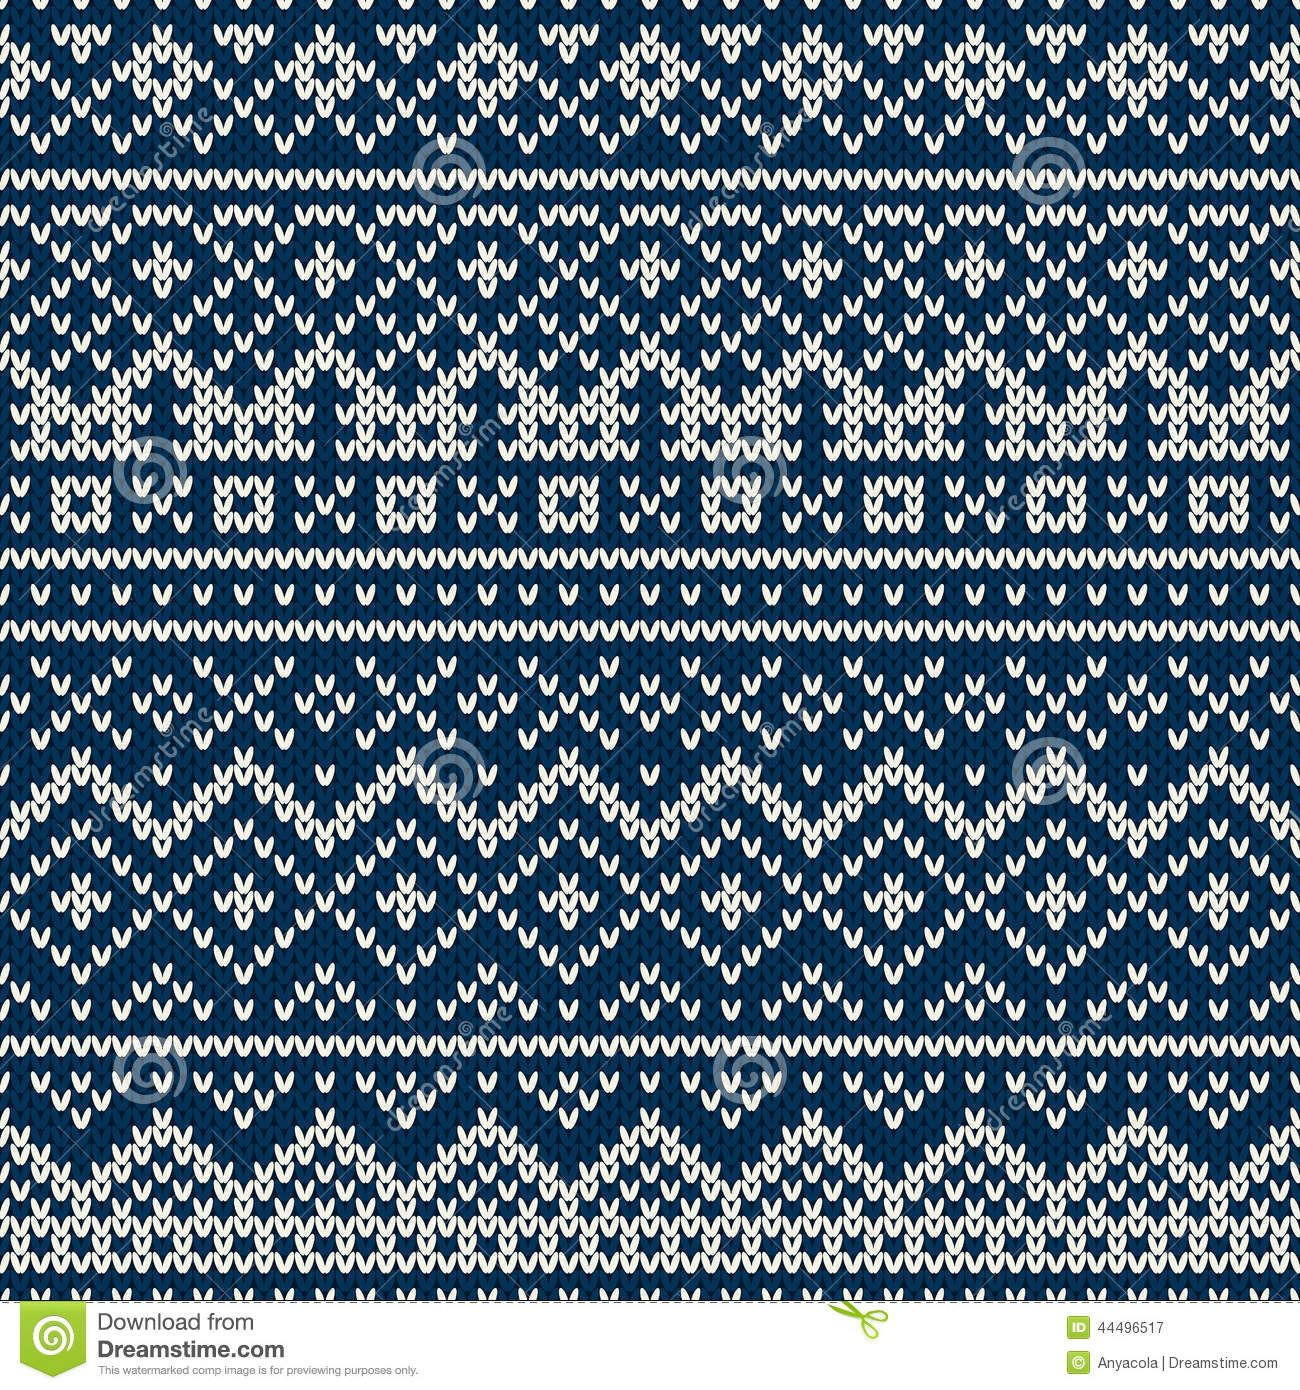 Knitted seamless pattern in Fair Isle style | Knitting | Pinterest ...